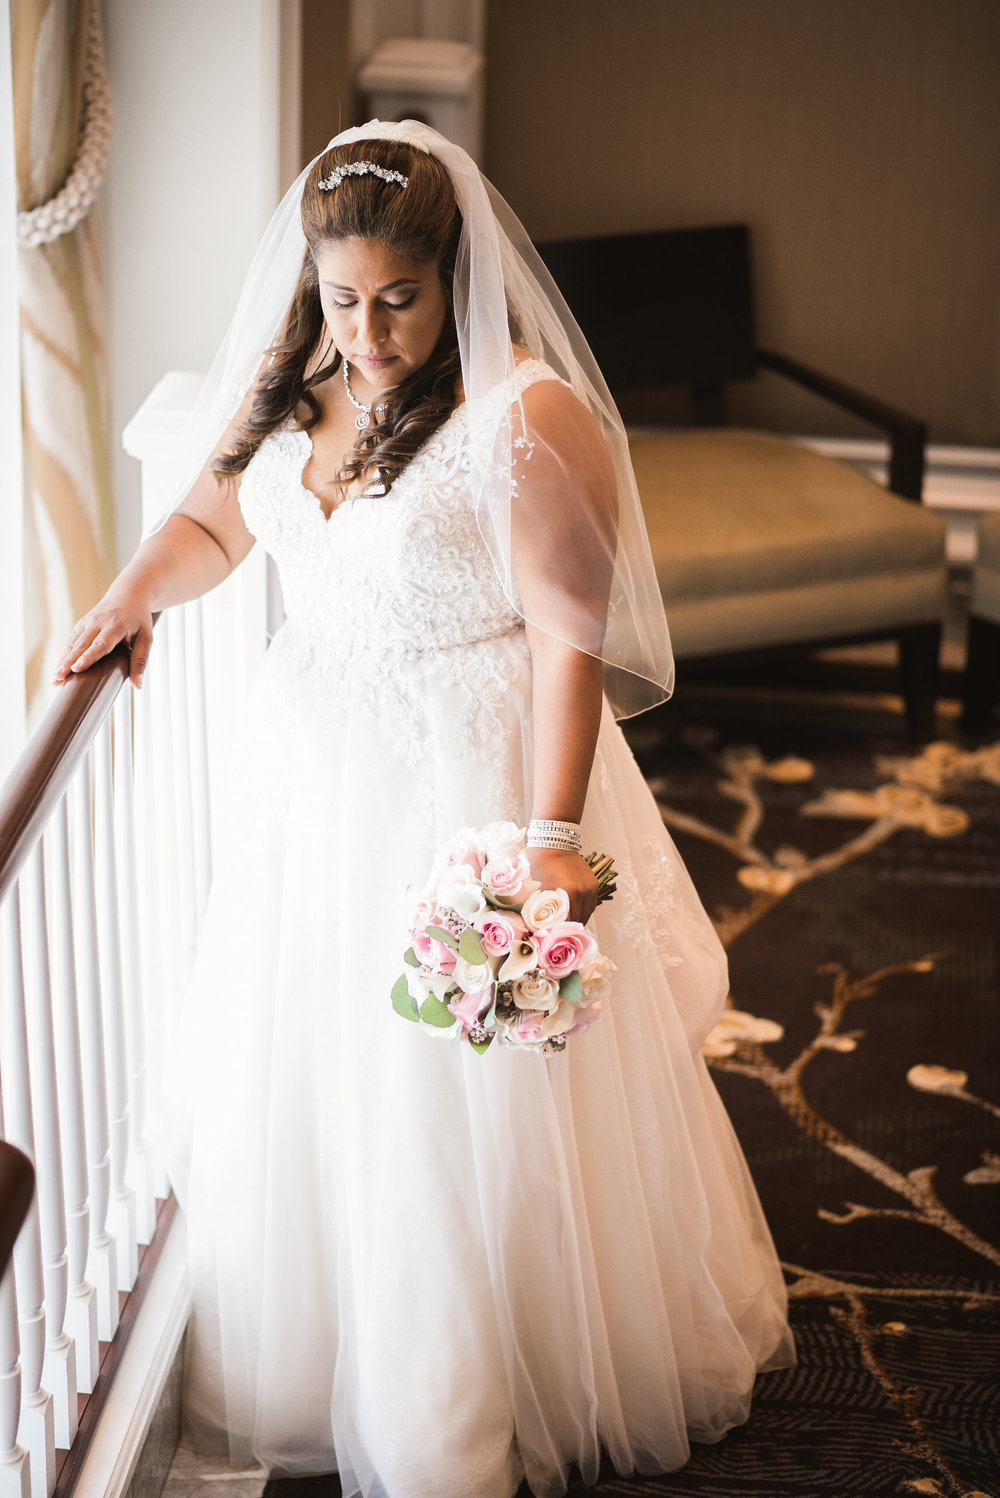 Bride standing by railing with bouquet